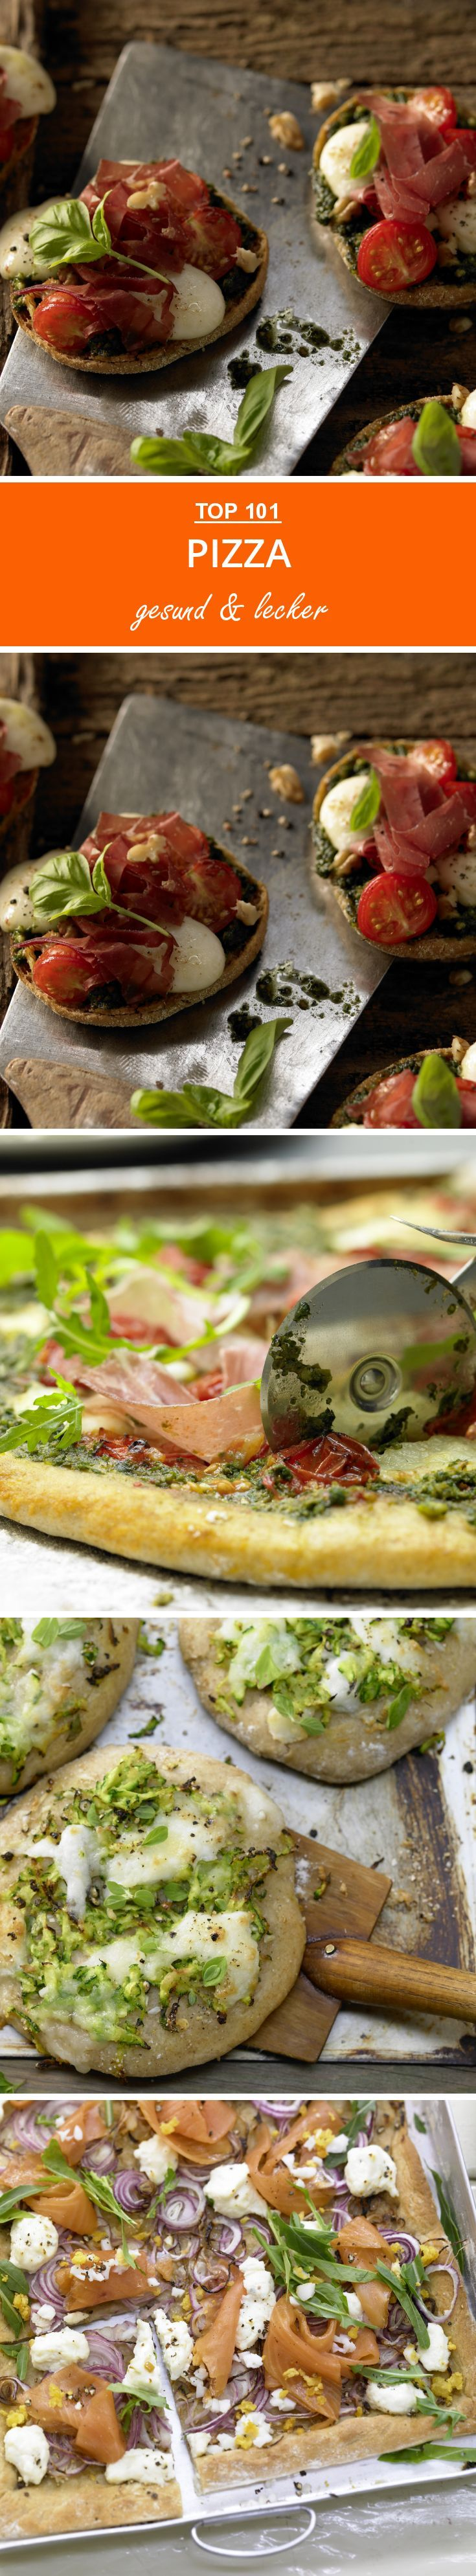 30 best Pizza, Foccacia images on Pinterest | Pizza pizza, Foods and ...